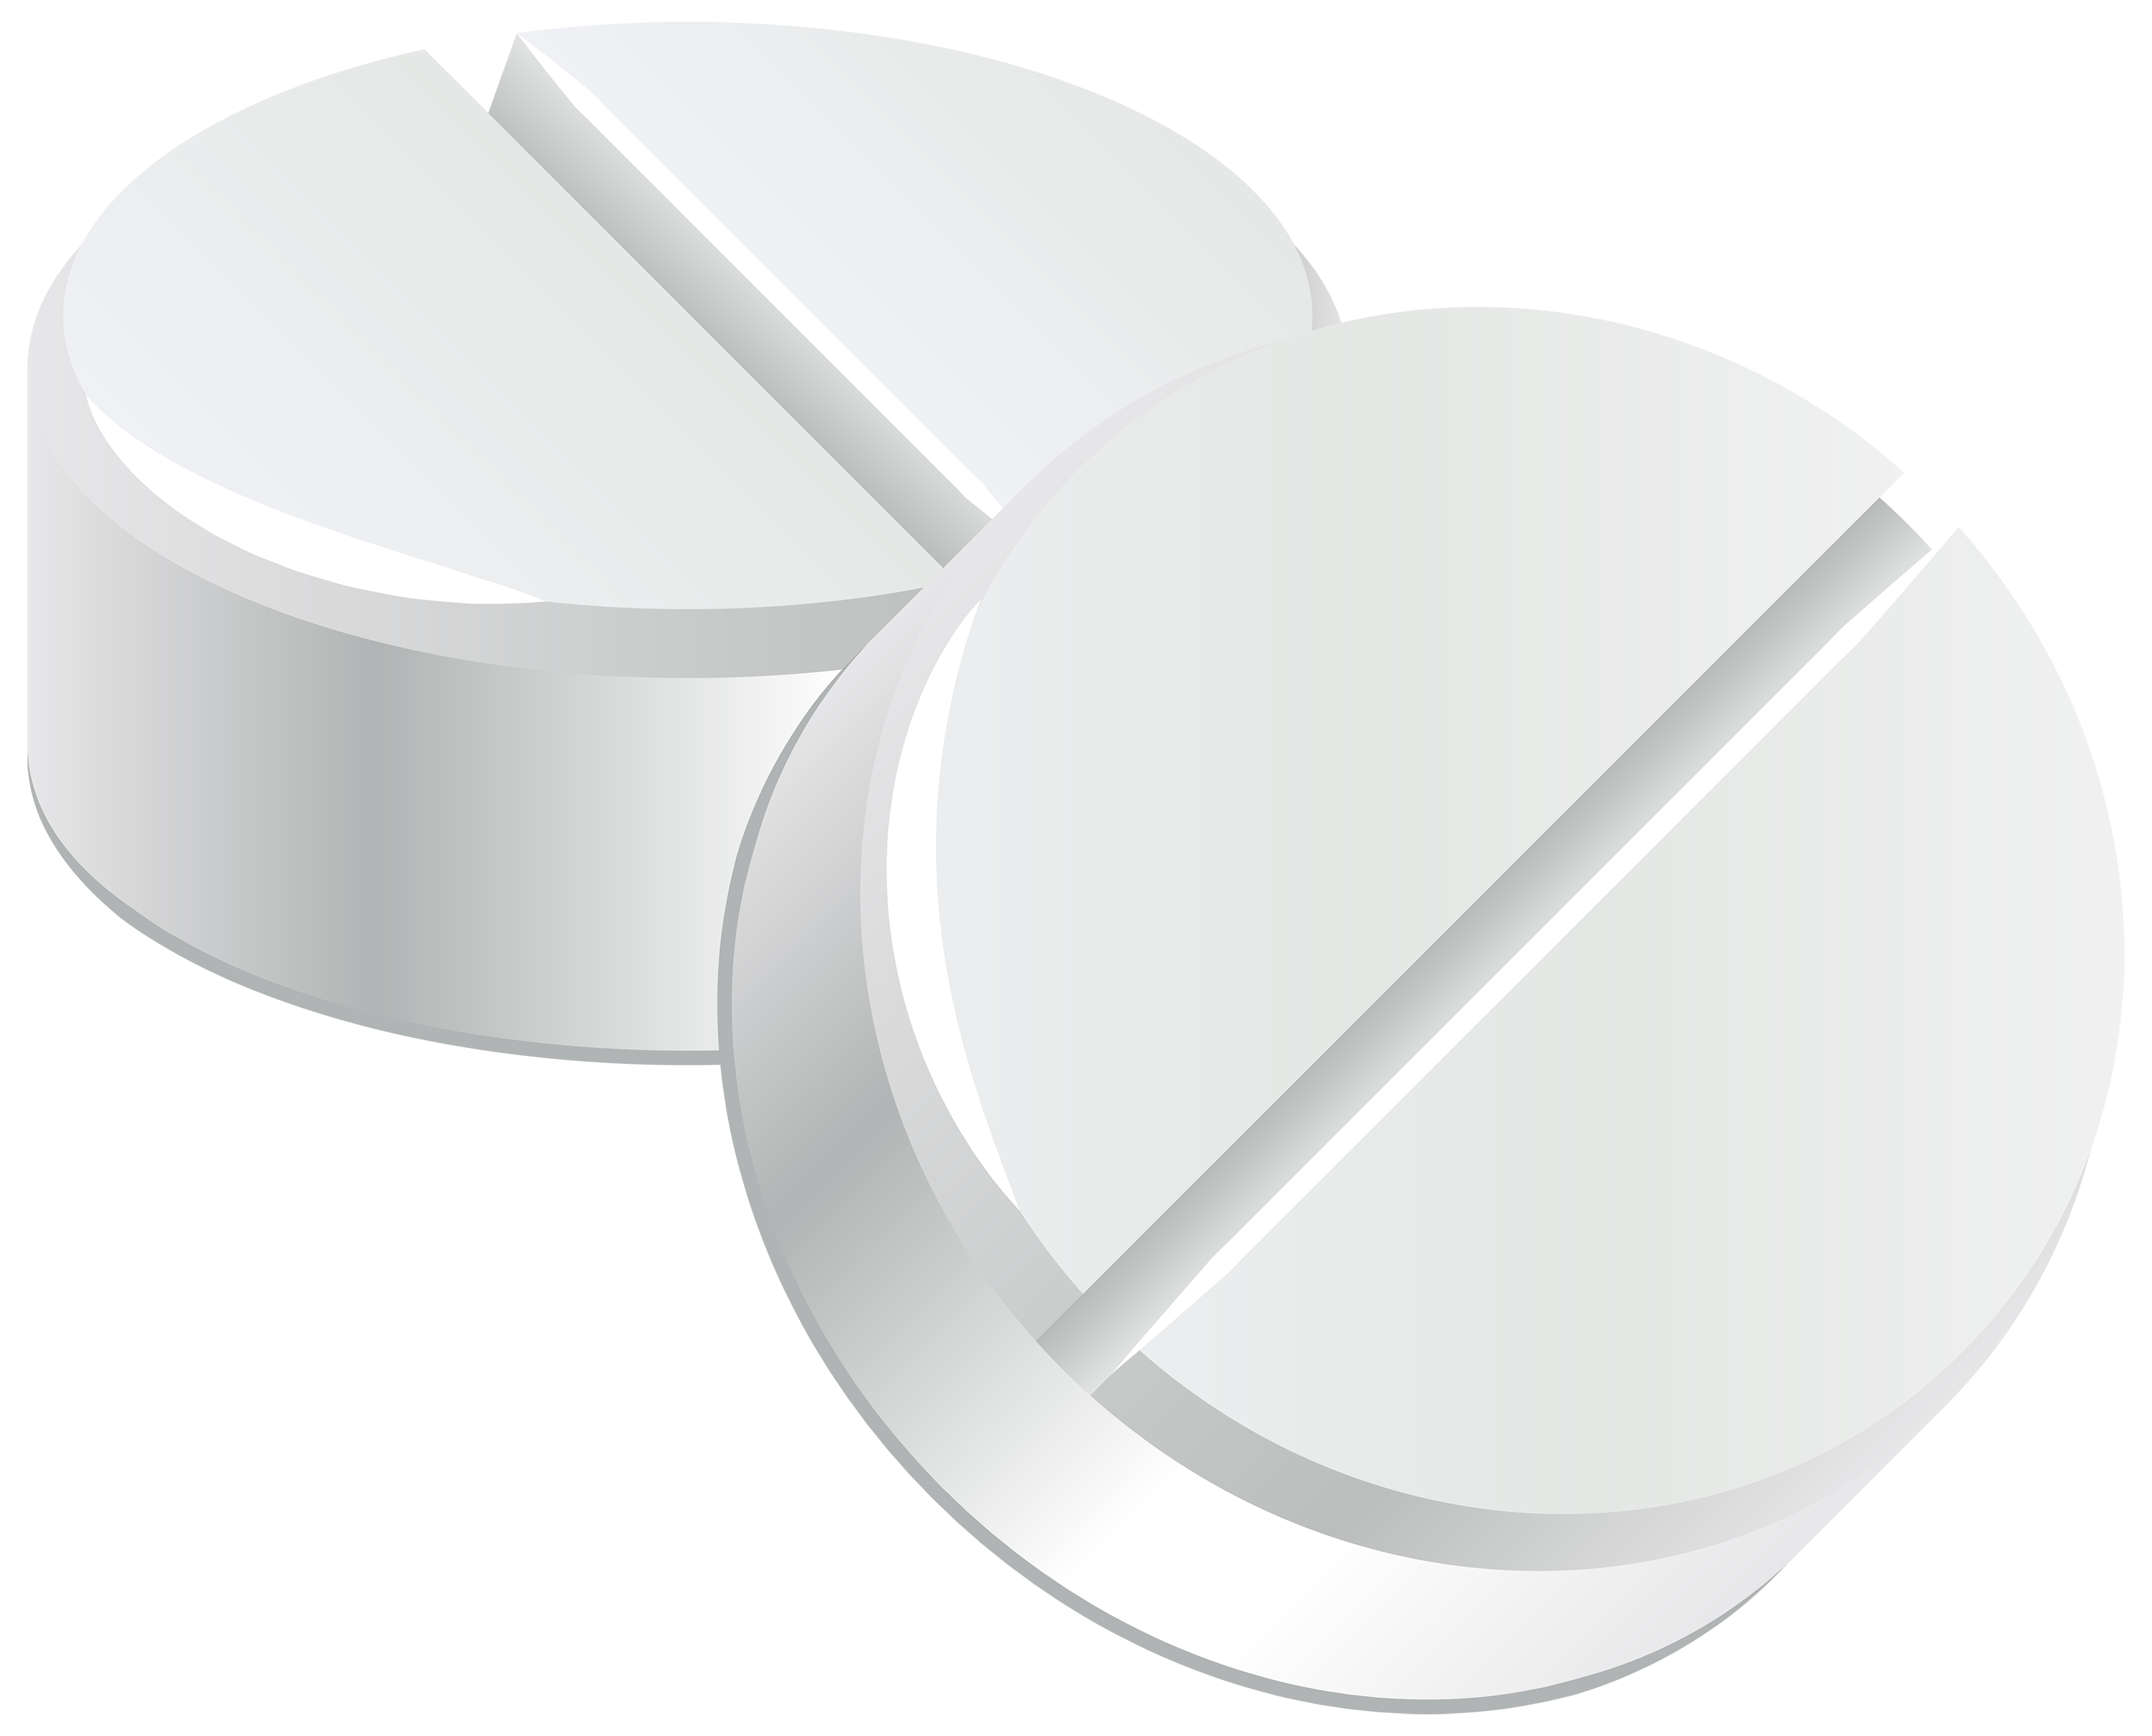 Tablet clipart round pill. White pills png best